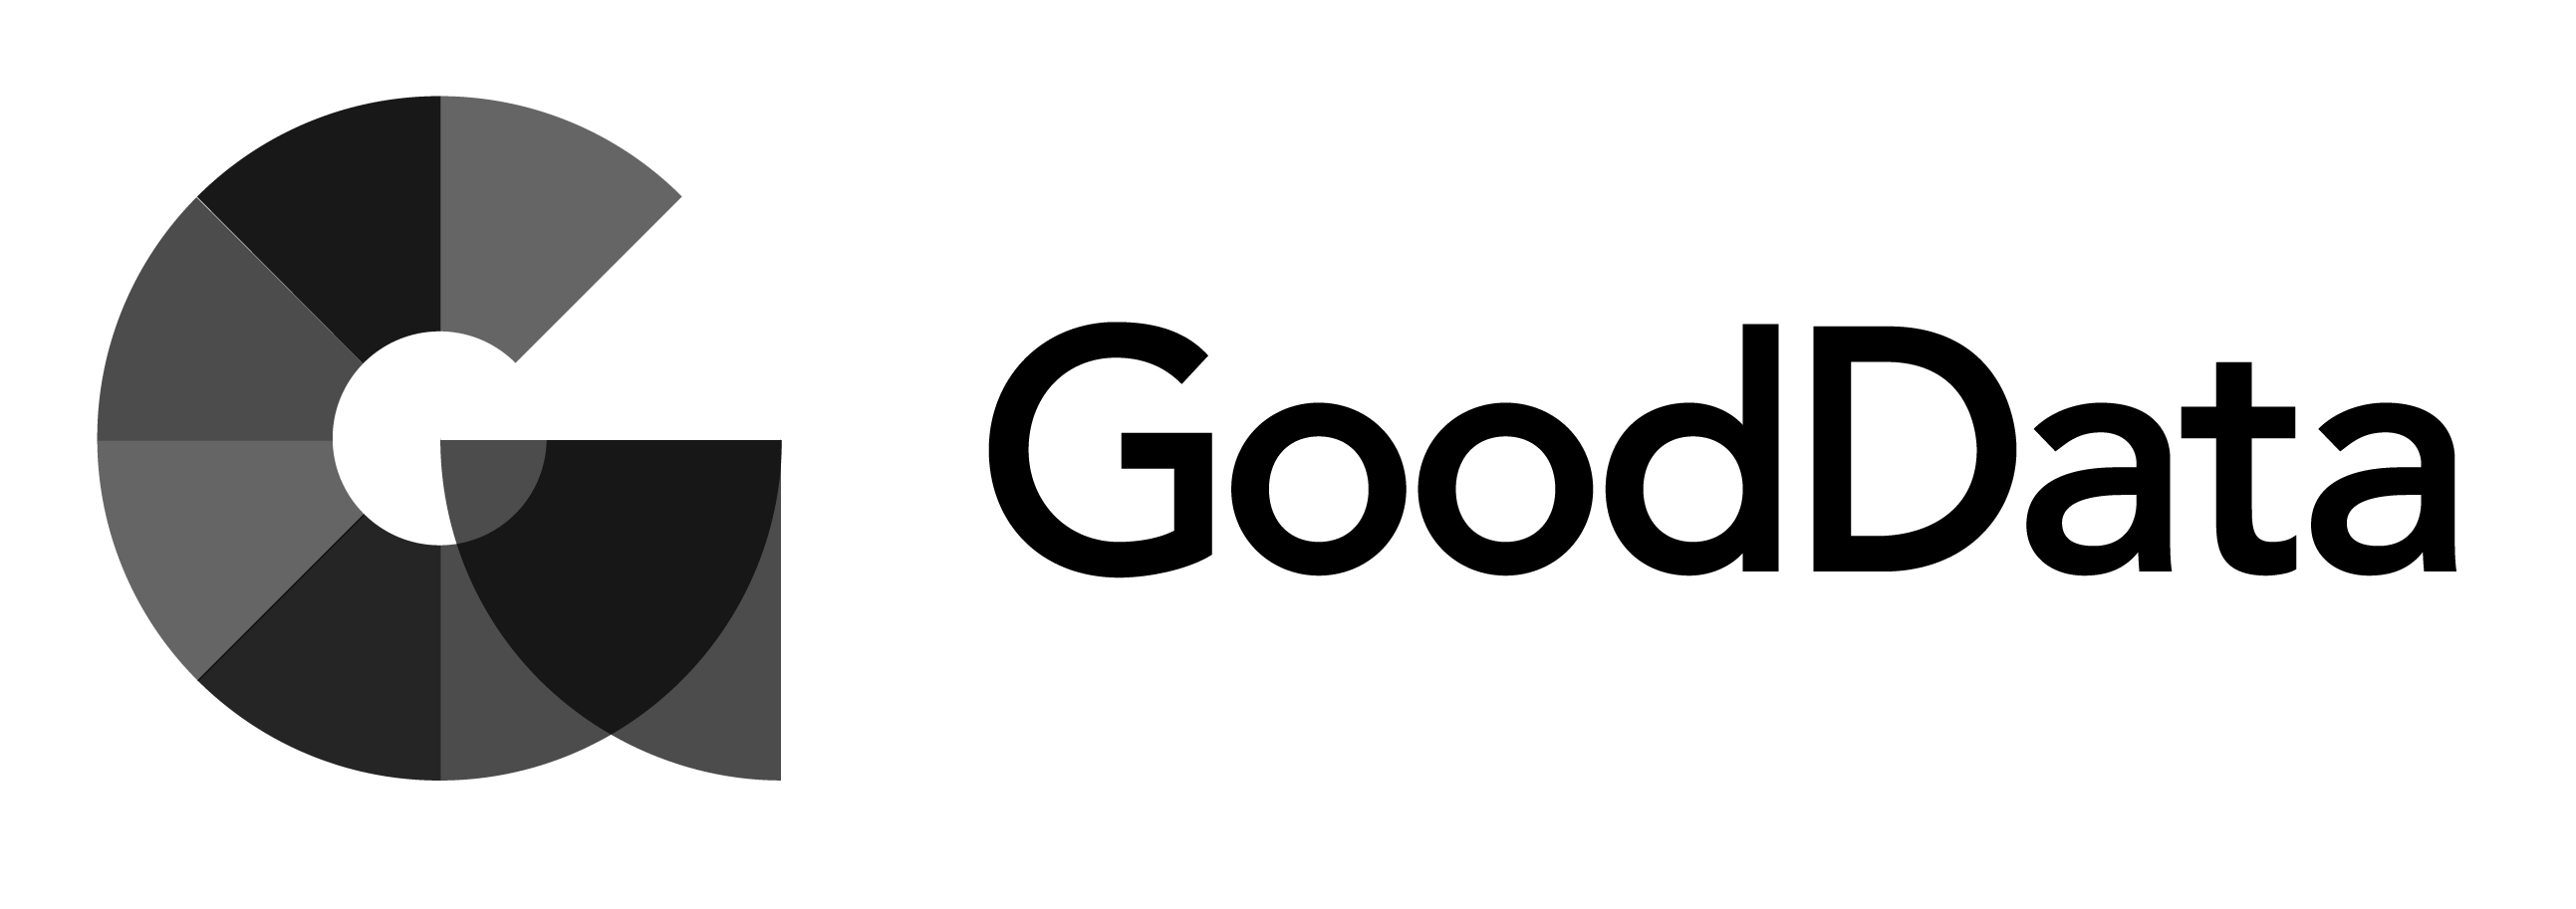 GoodData_Horizontal_Black